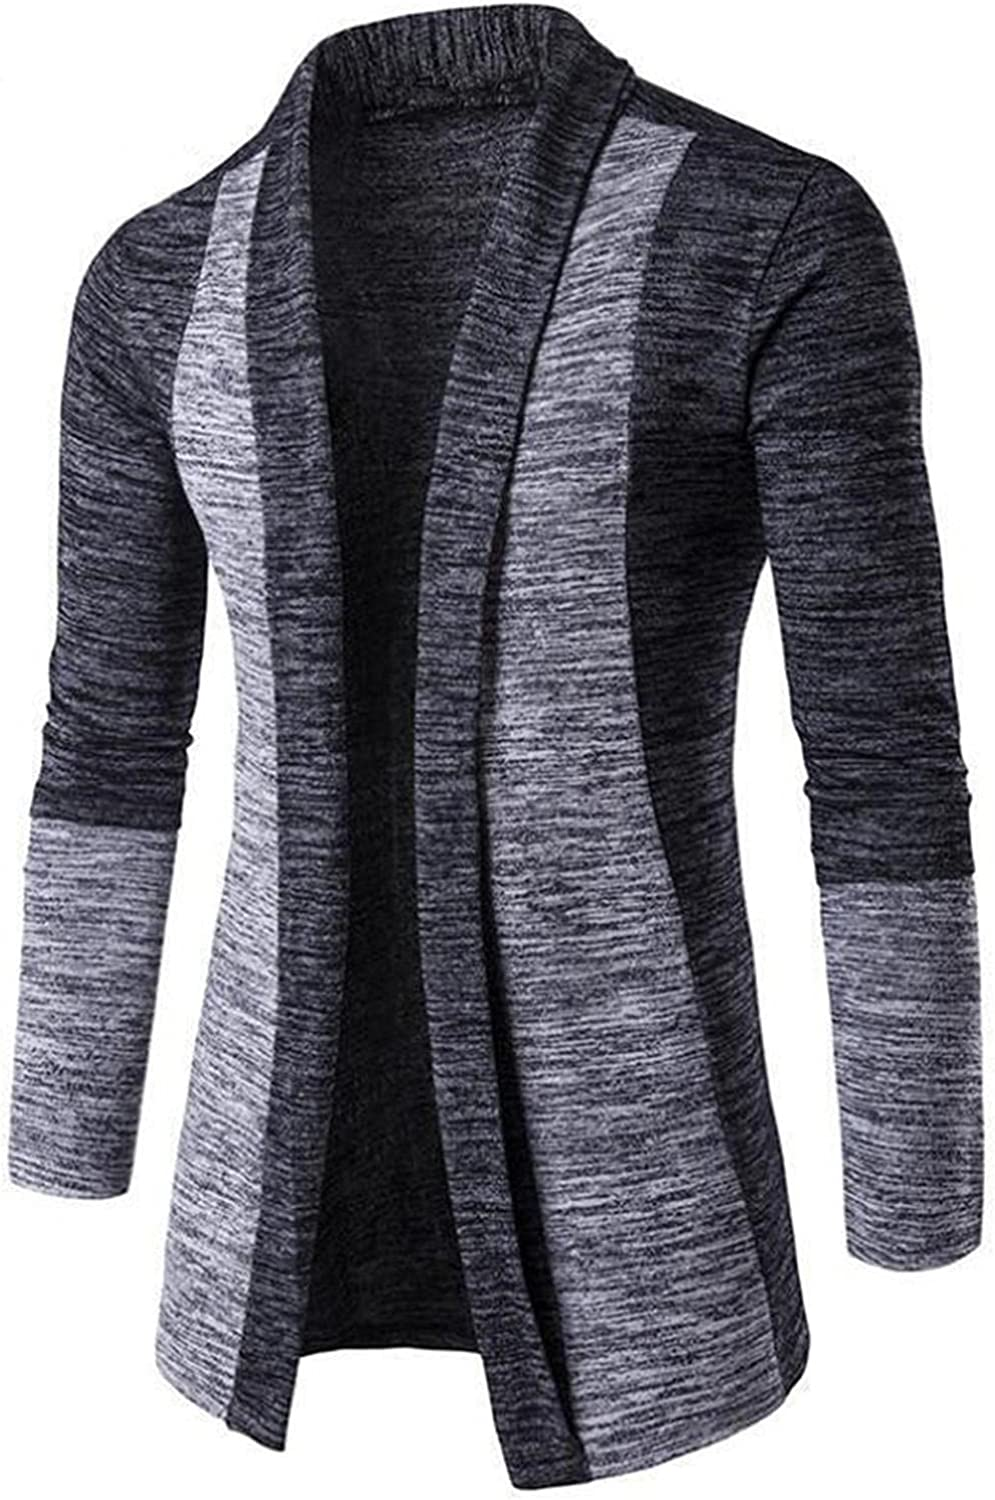 Burband Mens Lightweight Open Front Ruffle Shawl Collar Cardigan Sweaters Cotton Long Houndstooth Slim Fit Drape Cape